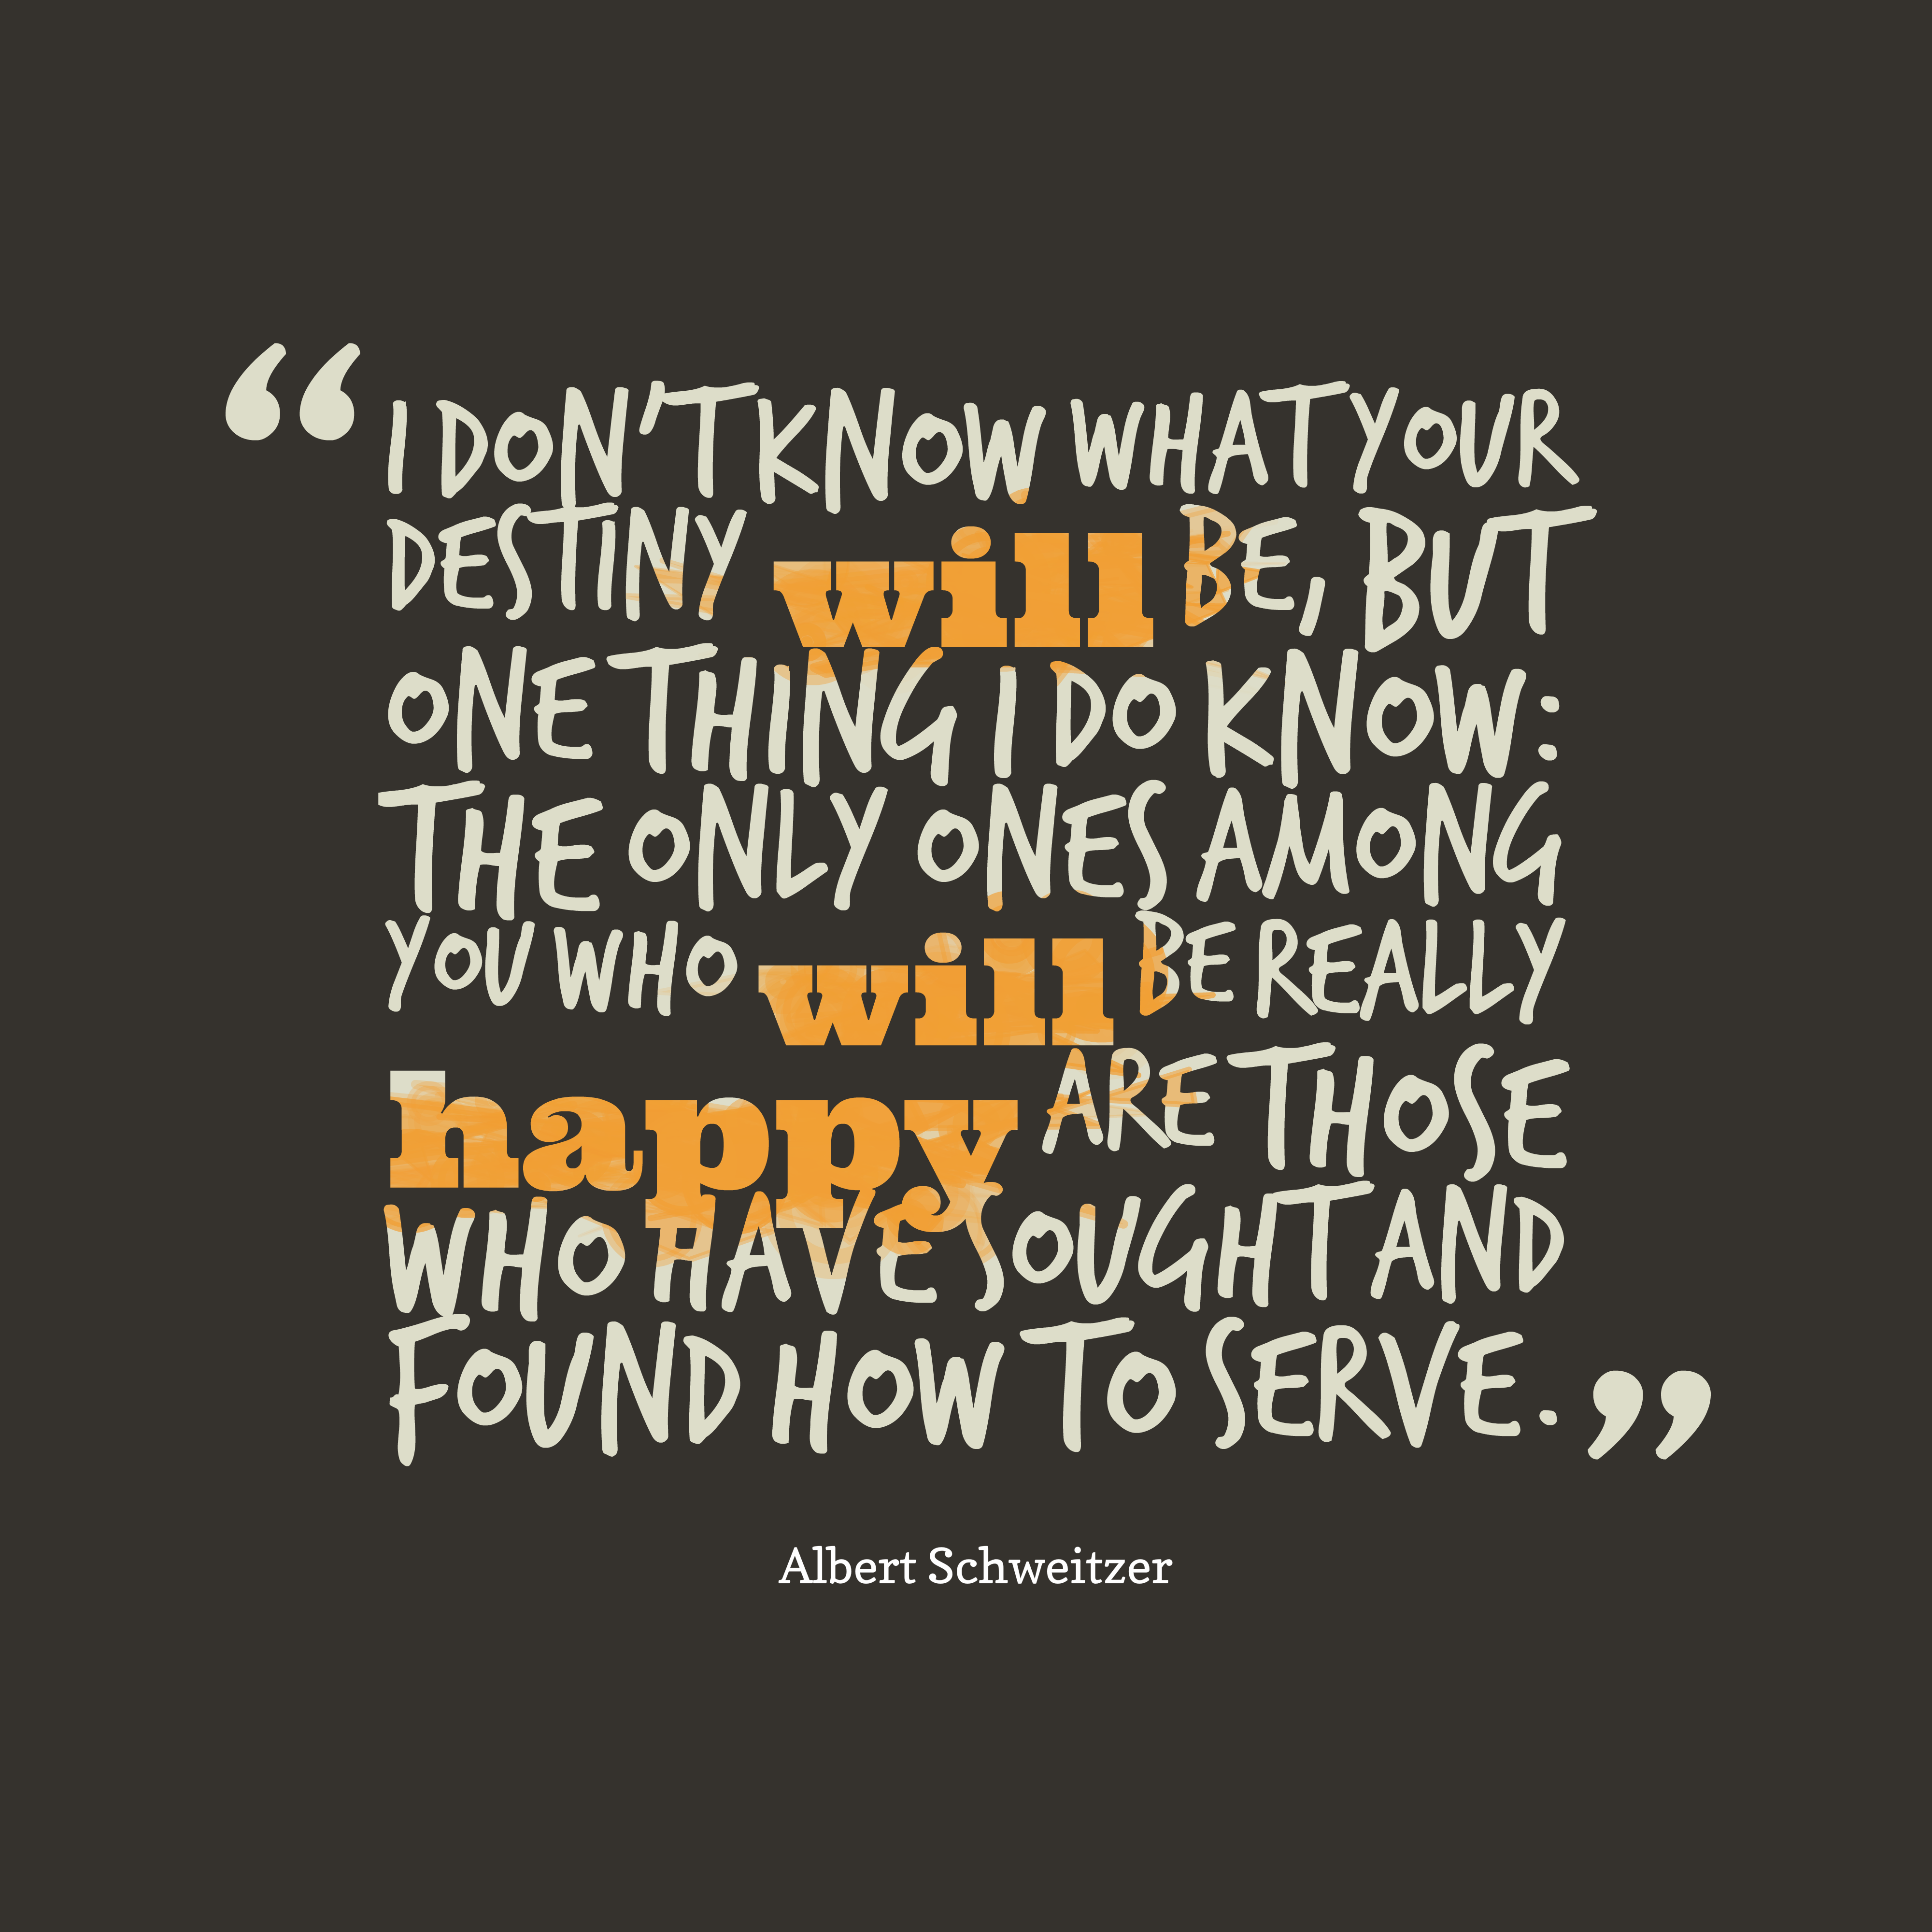 Quotes image of I don't know what your destiny will be, but one thing I do know: the only ones among you who will be really happy are those who have sought and found how to serve.